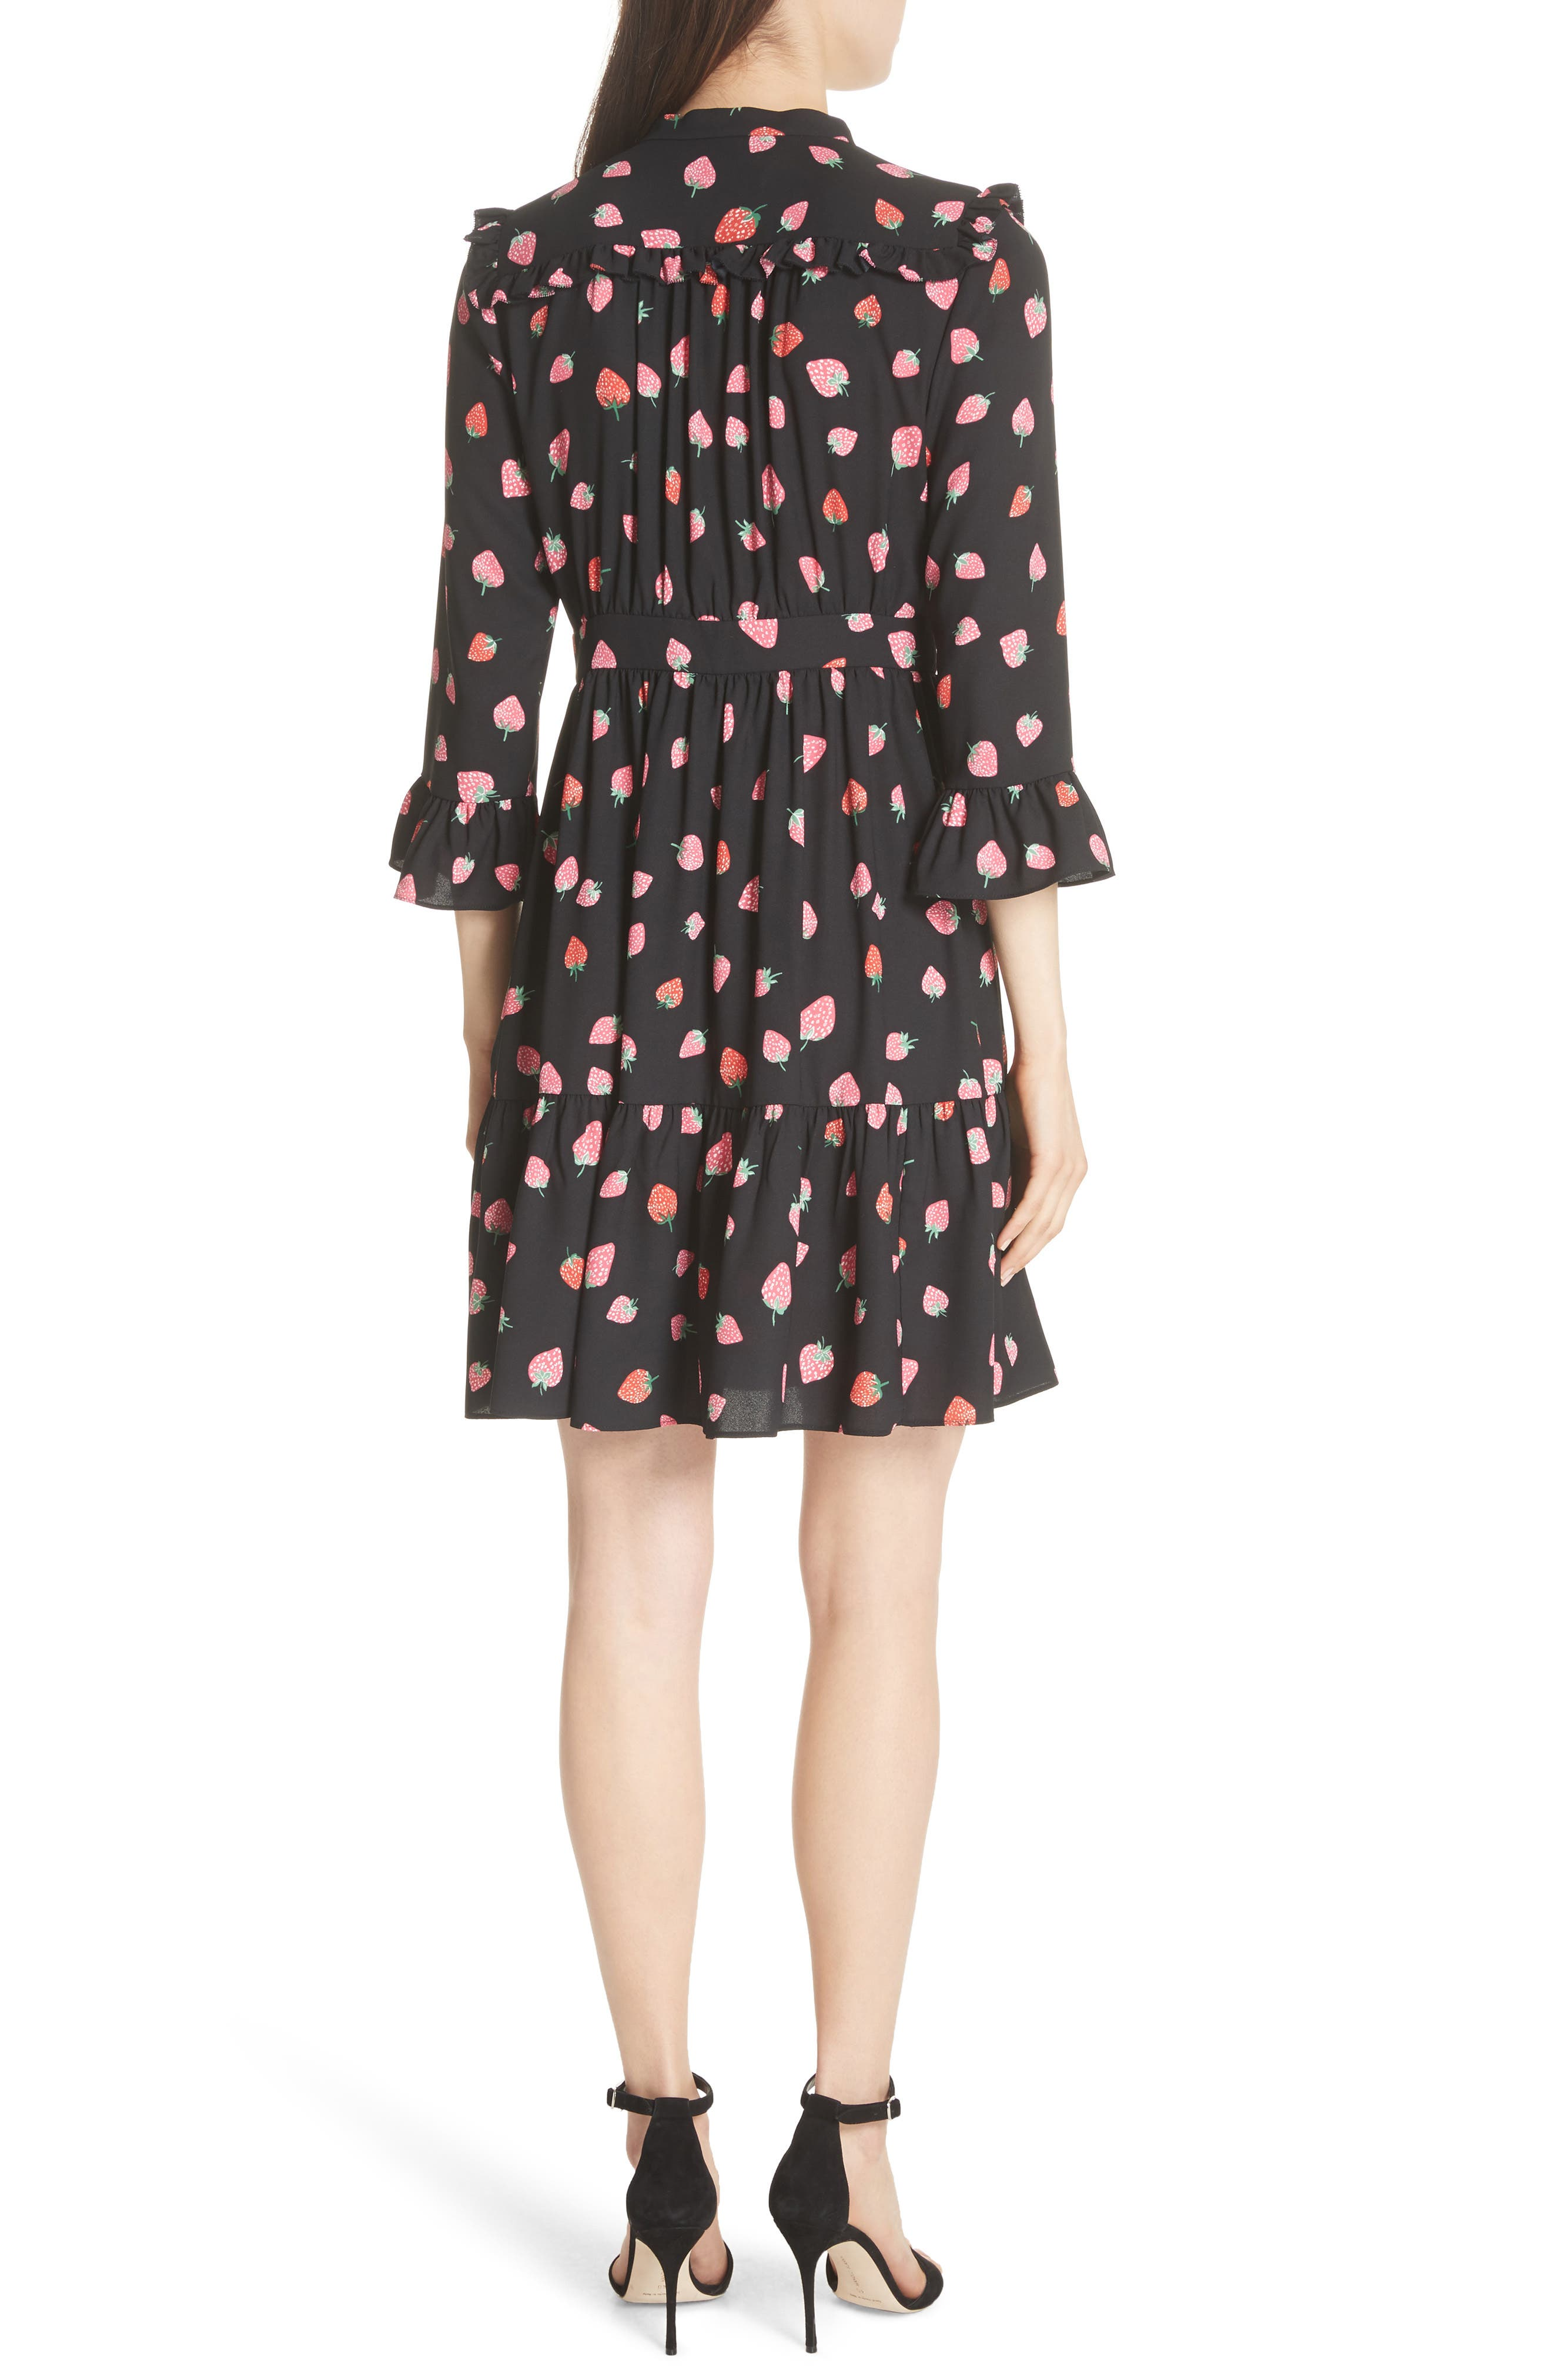 tossed berry shirtdress,                             Alternate thumbnail 2, color,                             001